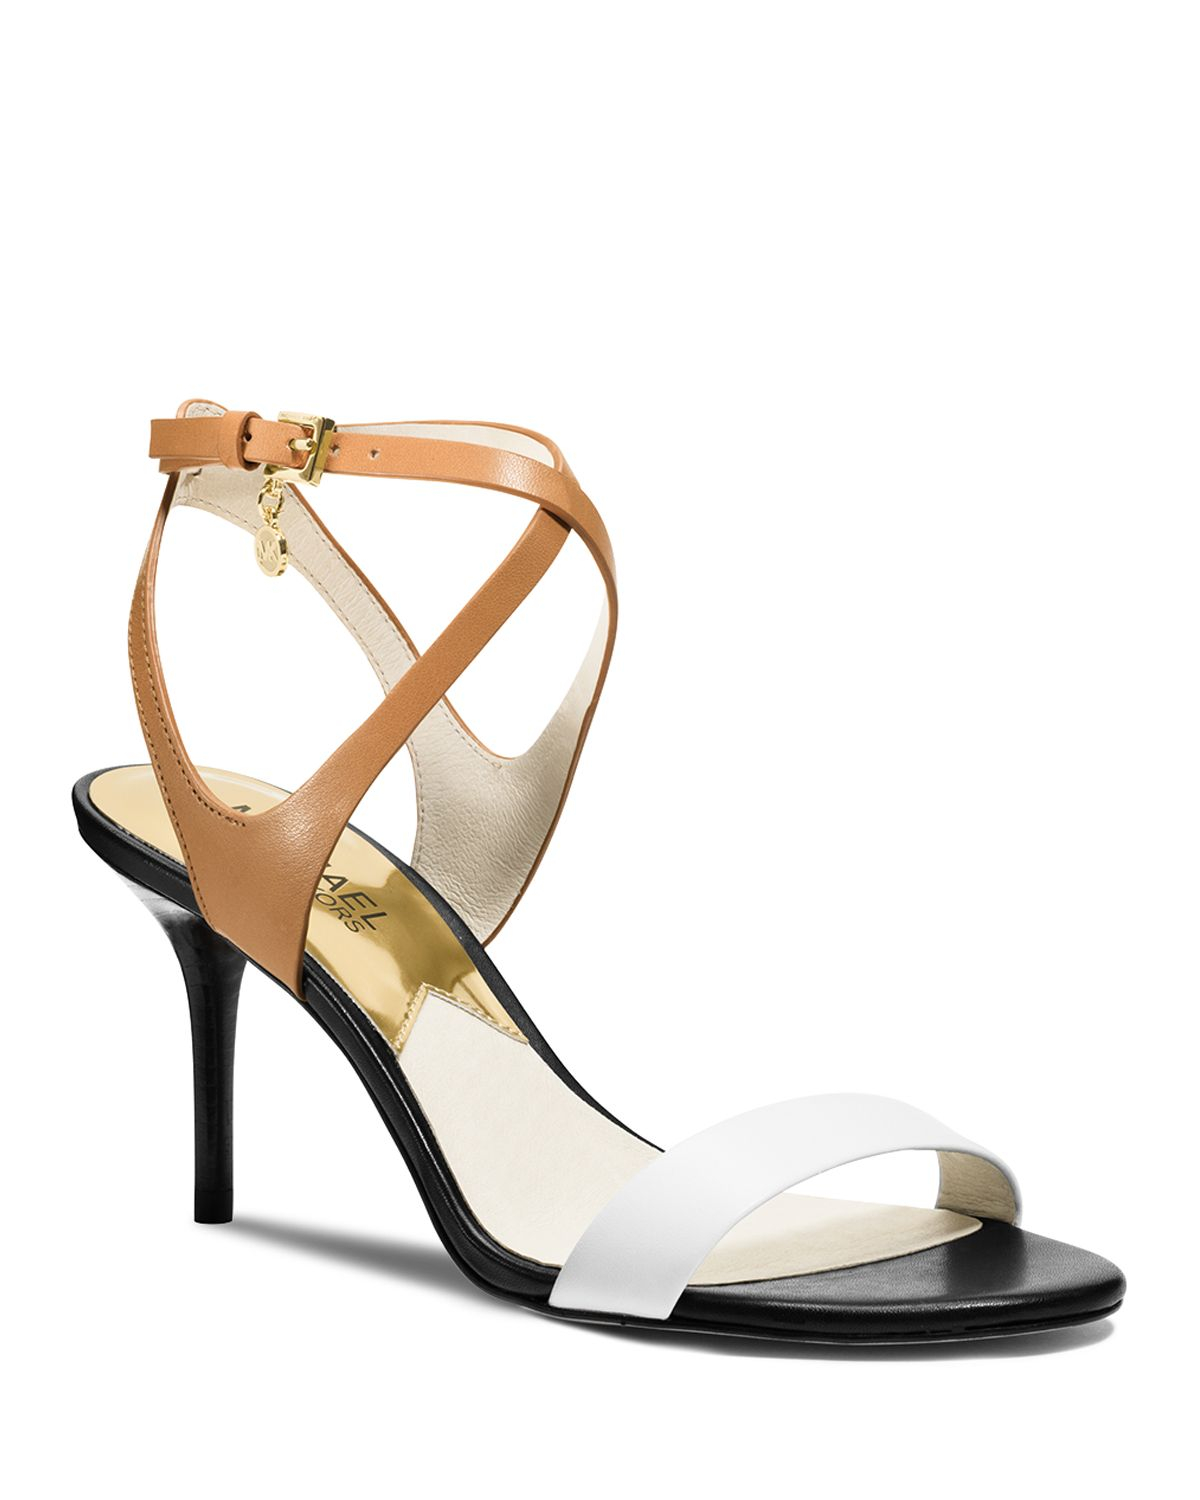 a6e65cfcd5bd Lyst - MICHAEL Michael Kors Strappy Sandals - Kaylee Mid Heel in White